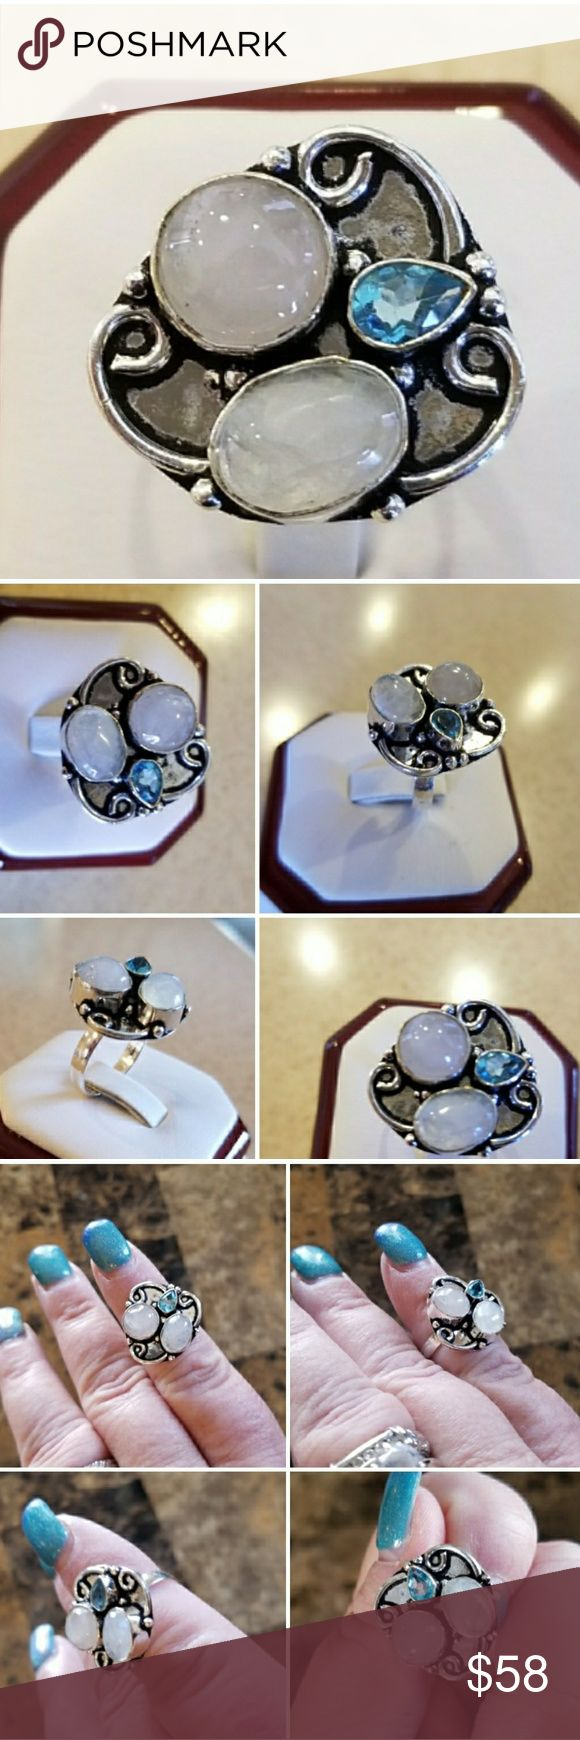 Genuine Rainbow Moonstone & Blue Topaz Ring 7 This ring is very pretty! The Blue Topaz lends a striking contrast!  Set in 925 stamped Solid Sterling Silver. Please see all pictures for more detail and measurement. Brand New. Never Worn. WHOLESALE Prices Always! Jewelry Rings